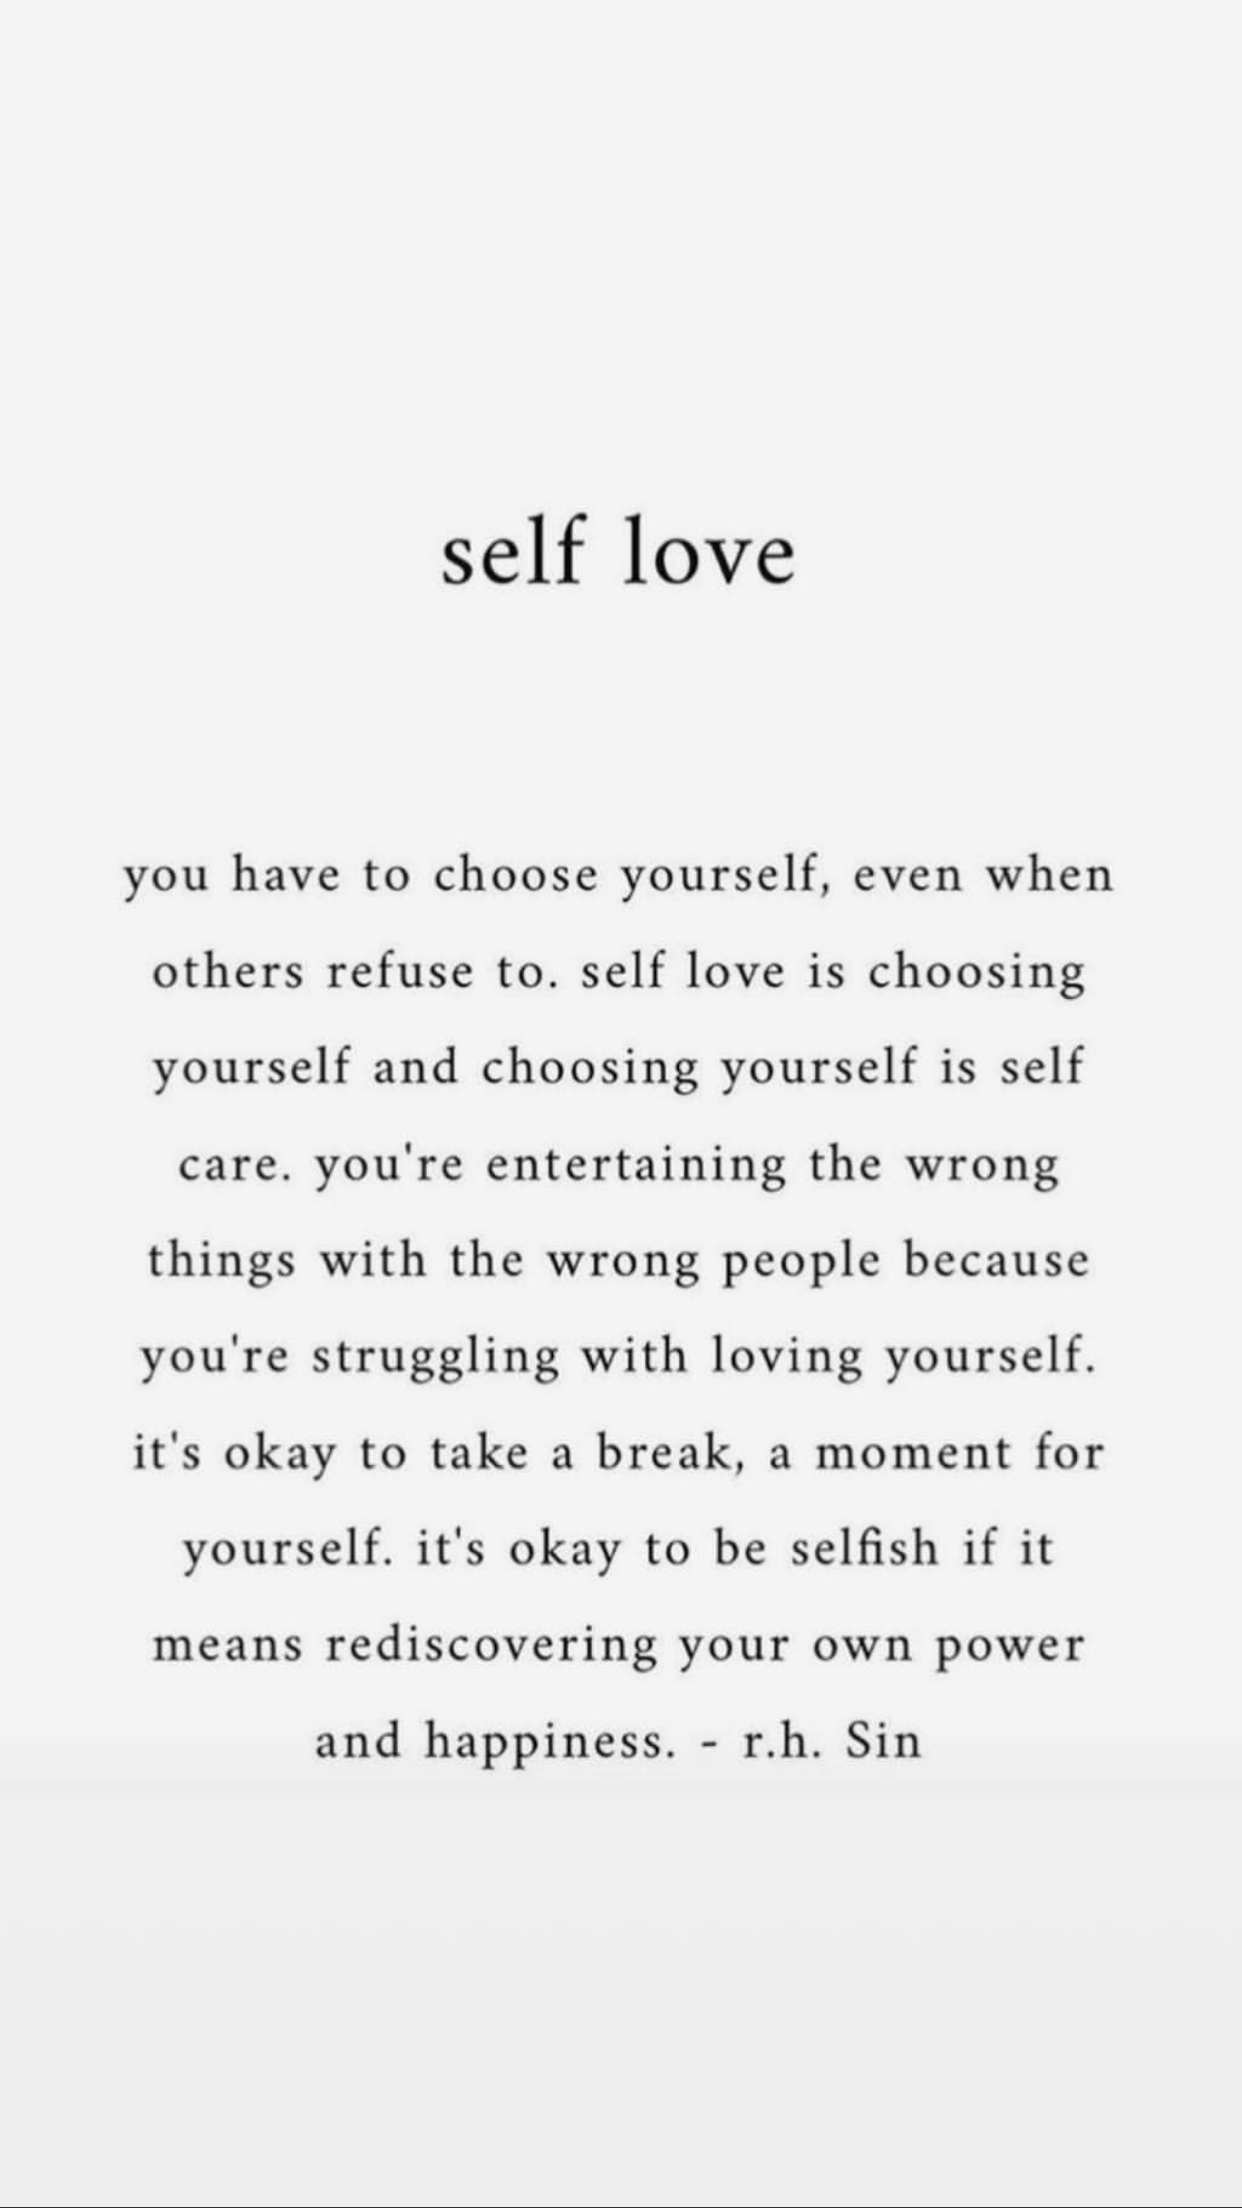 You have to choose yourself. selflove selfcare